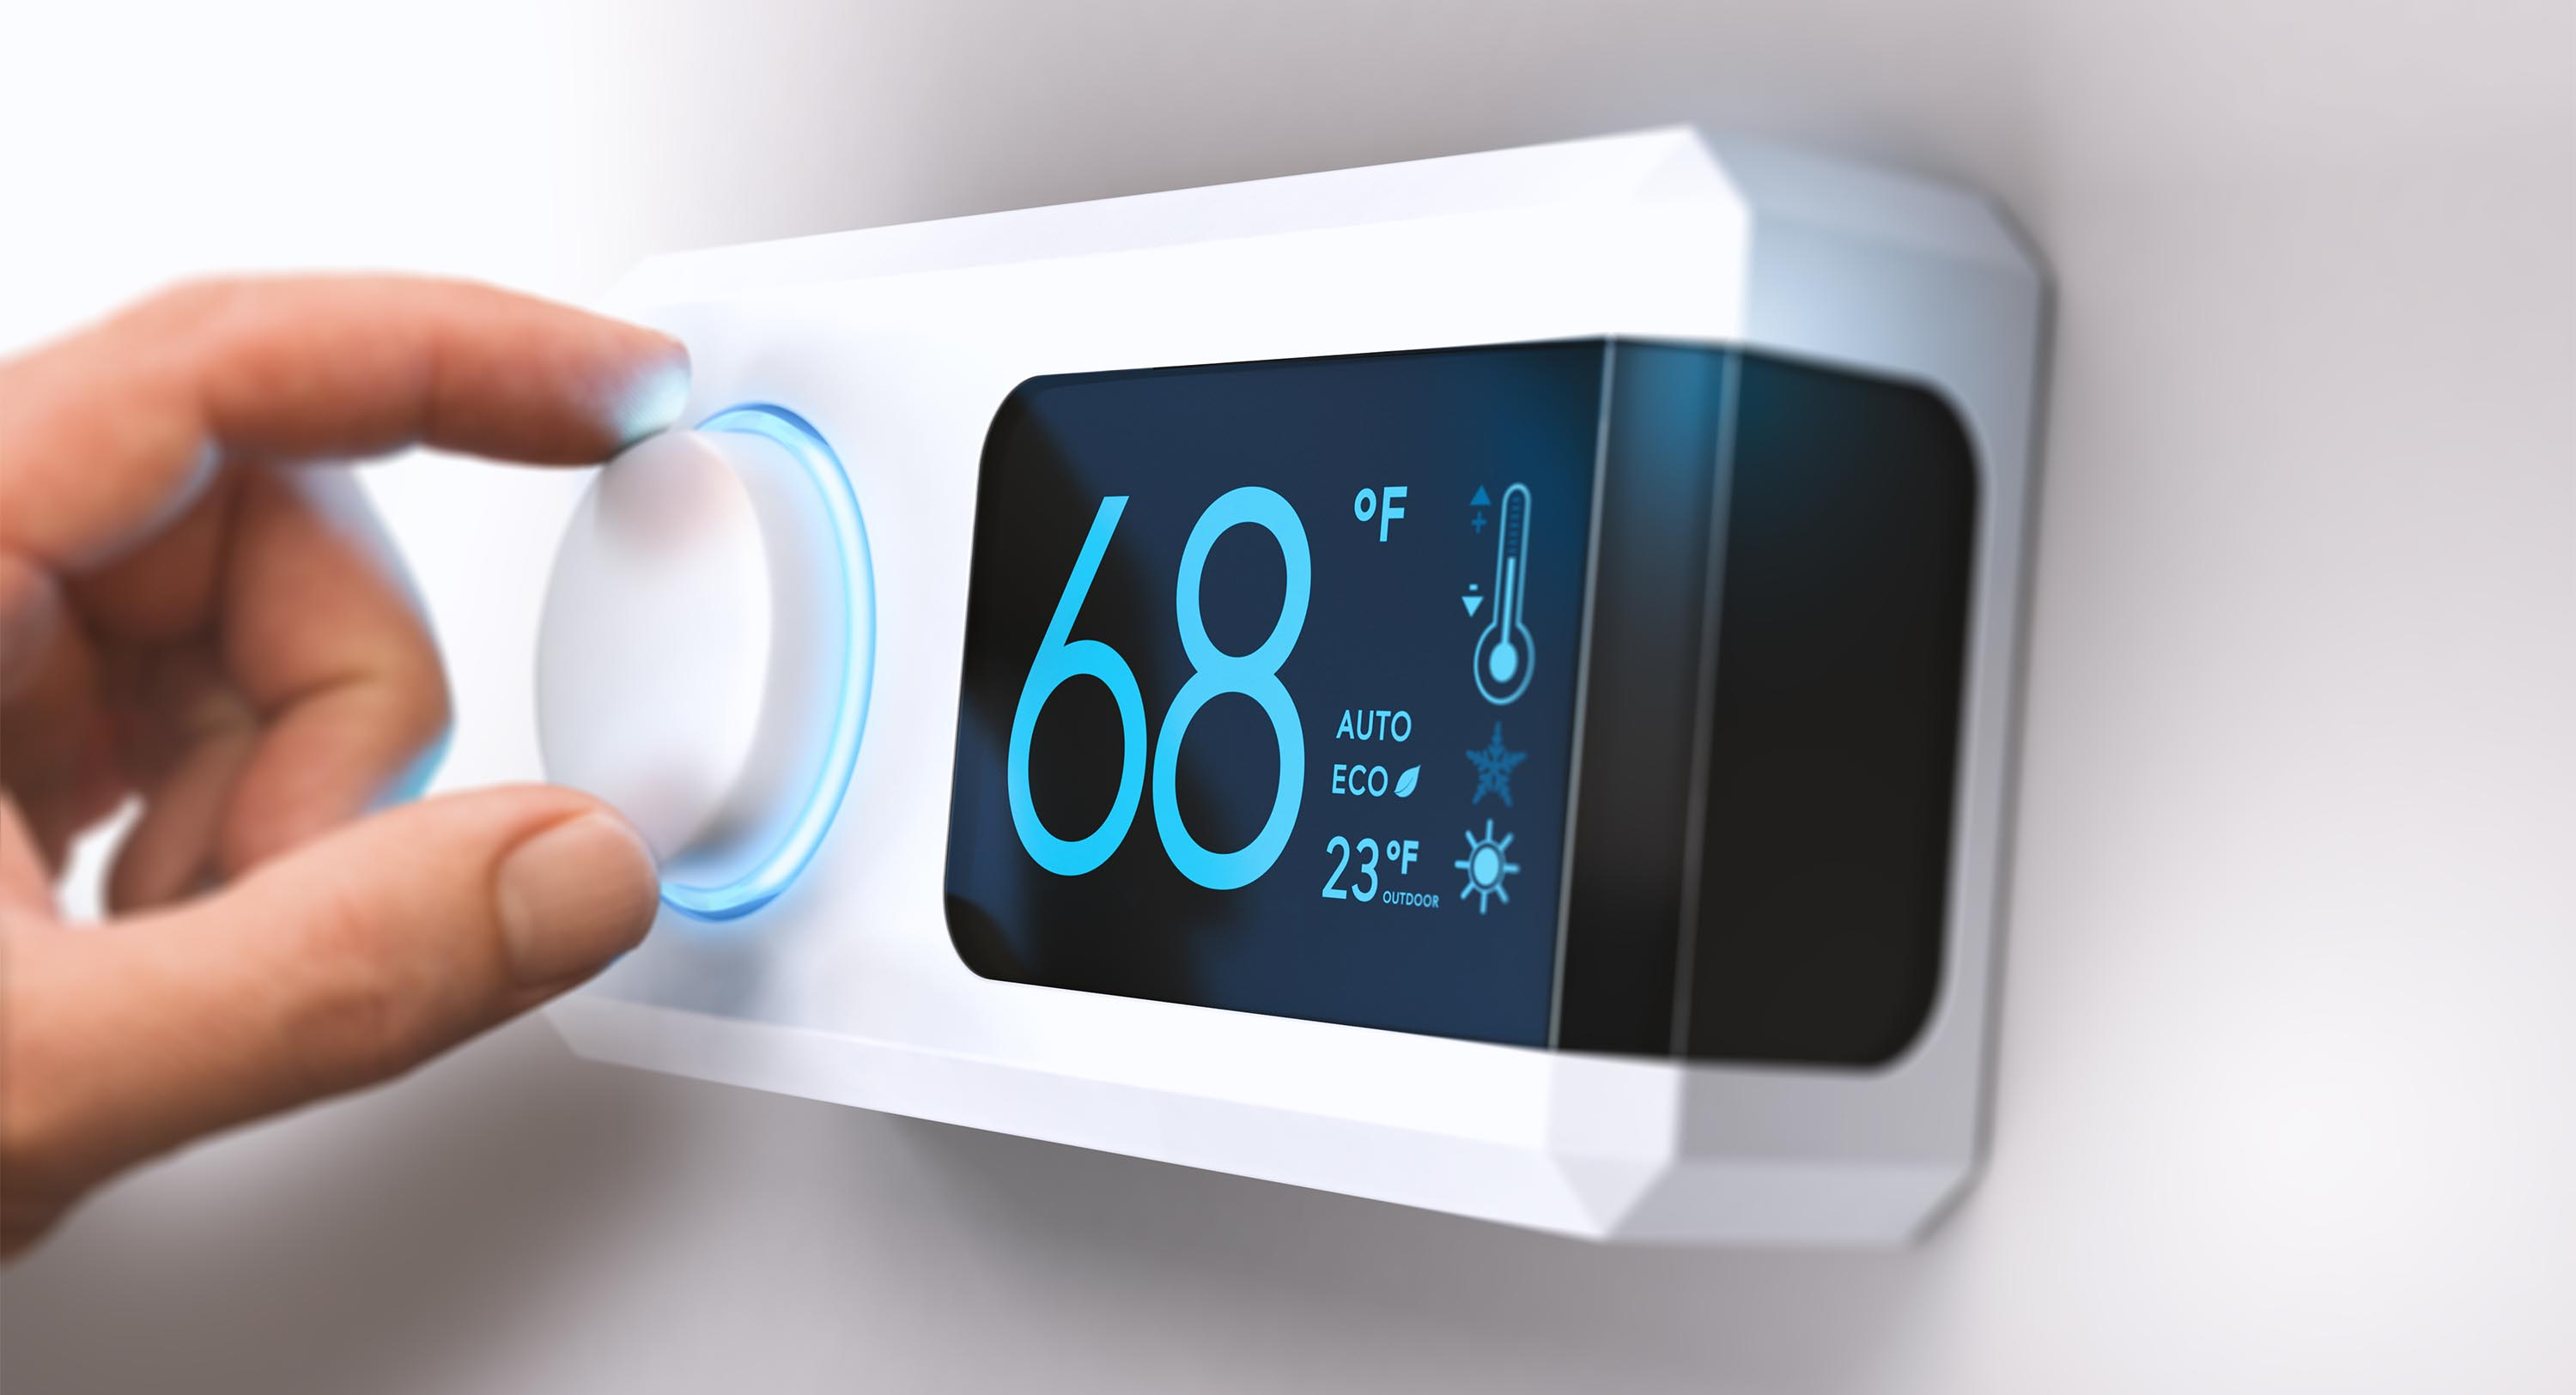 Thermostat set to 68*